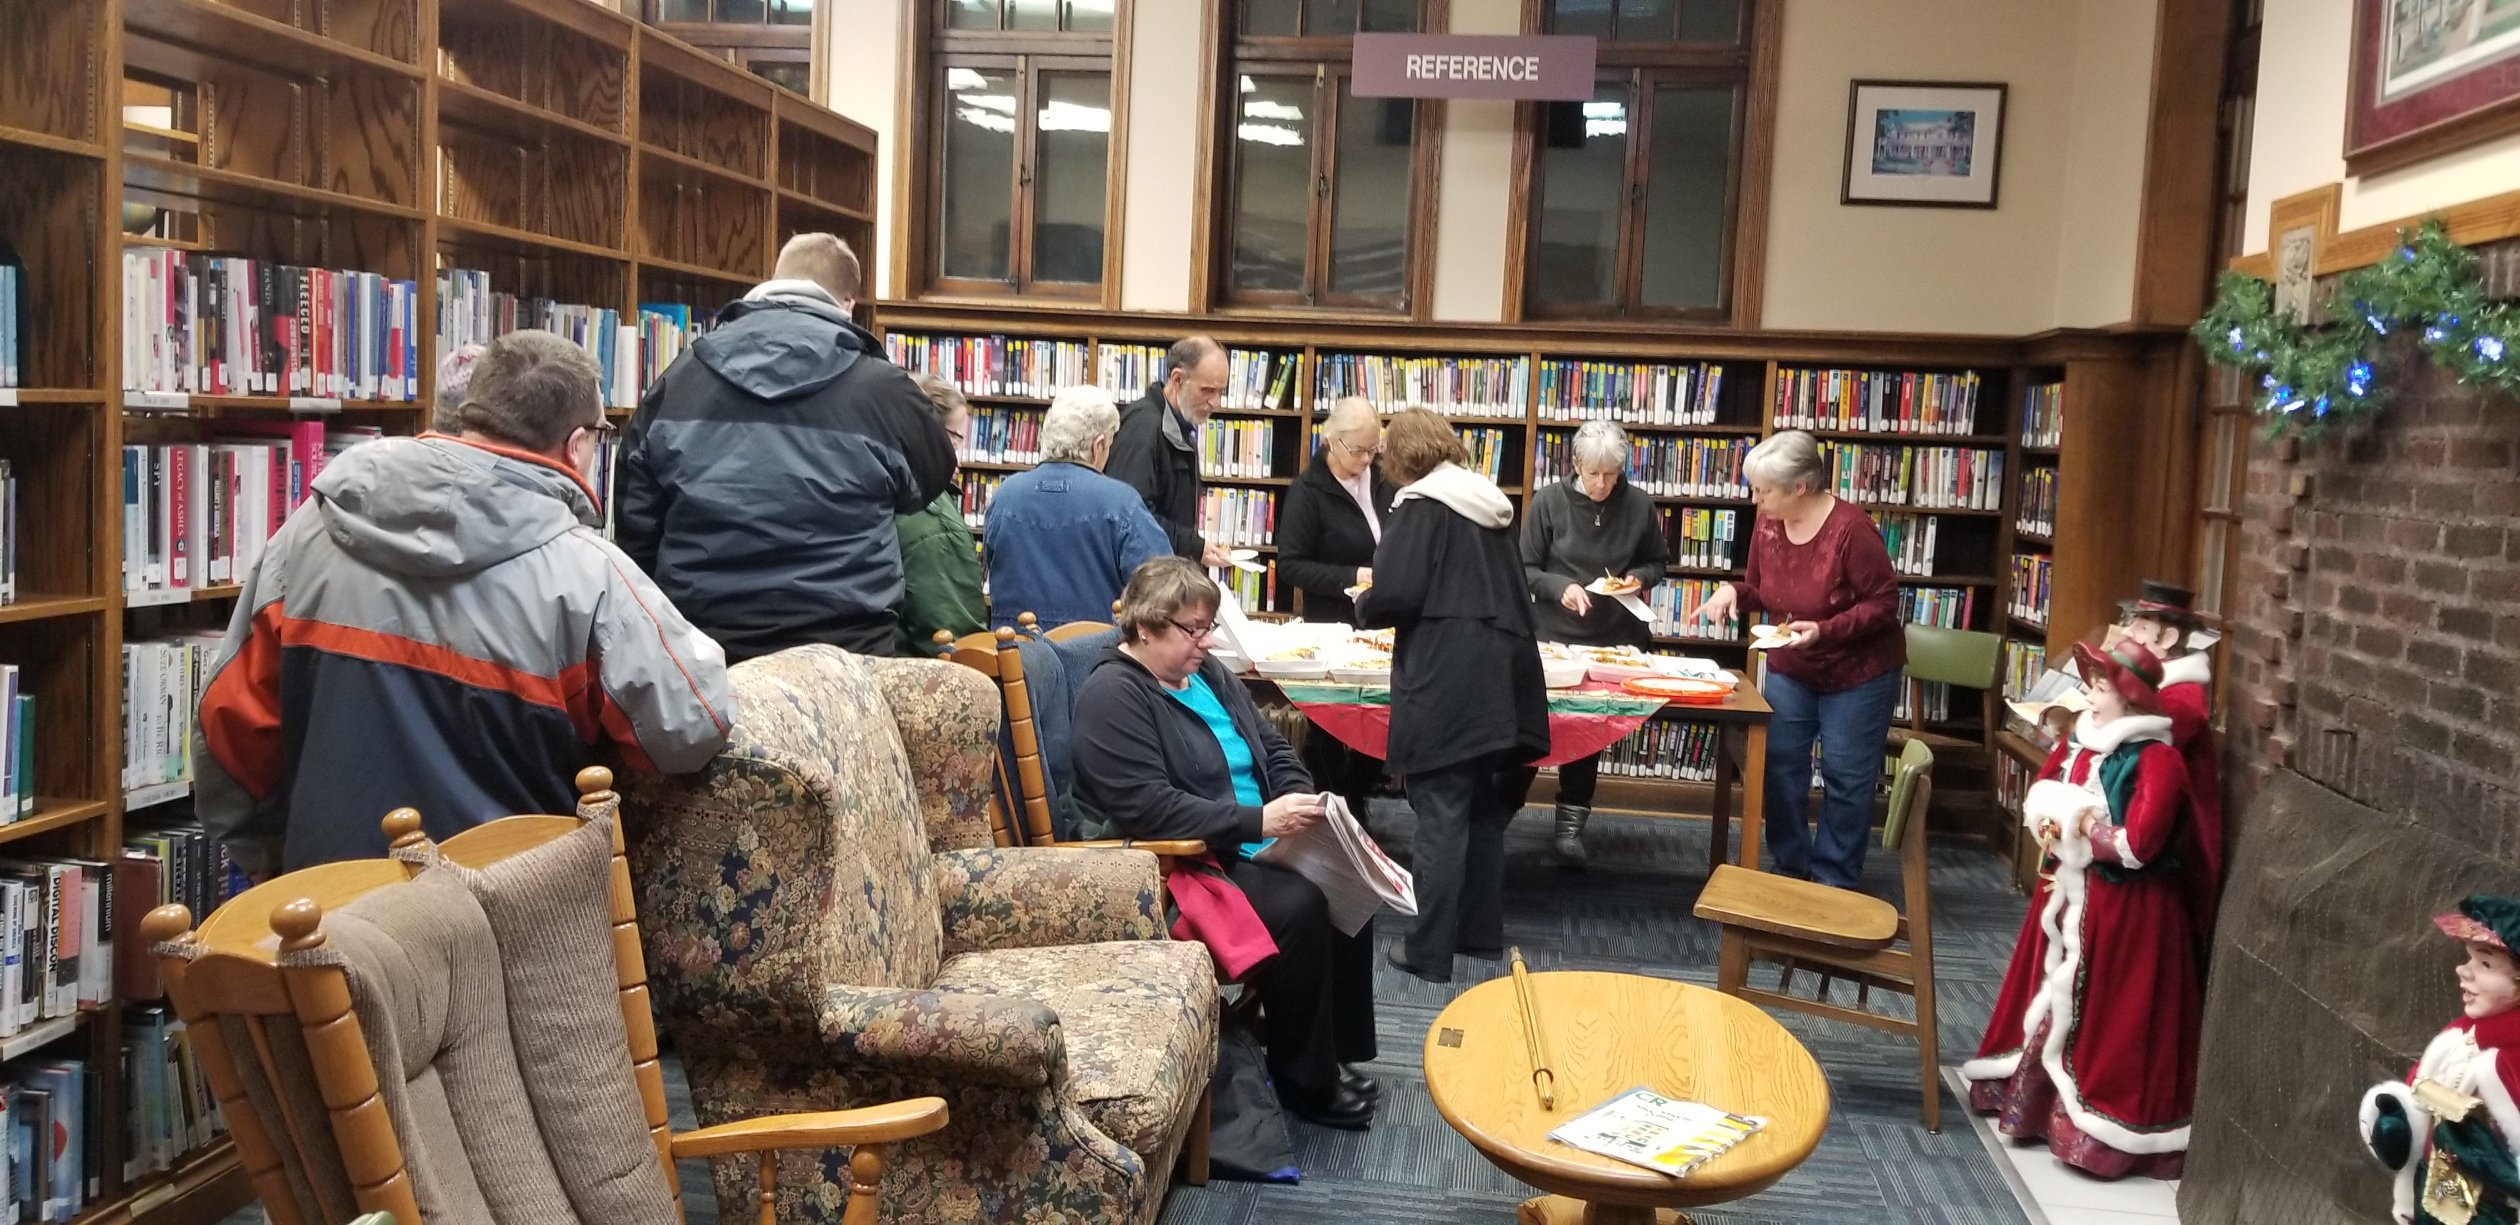 Neillsville After Hours @ the Library